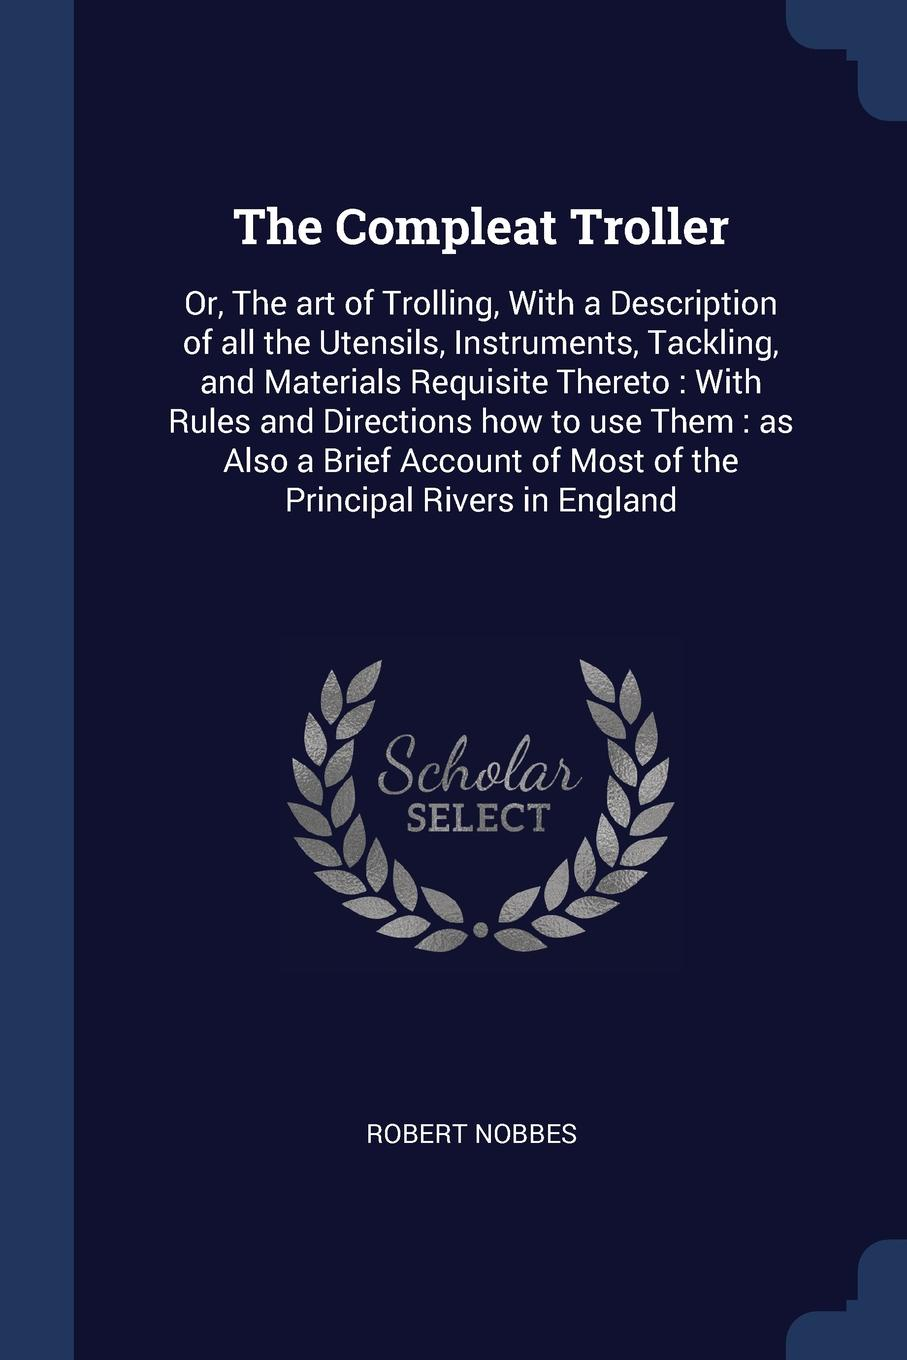 цена на Robert Nobbes The Compleat Troller. Or, The art of Trolling, With a Description of all the Utensils, Instruments, Tackling, and Materials Requisite Thereto : With Rules and Directions how to use Them : as Also a Brief Account of Most of the Principal Rivers in ...